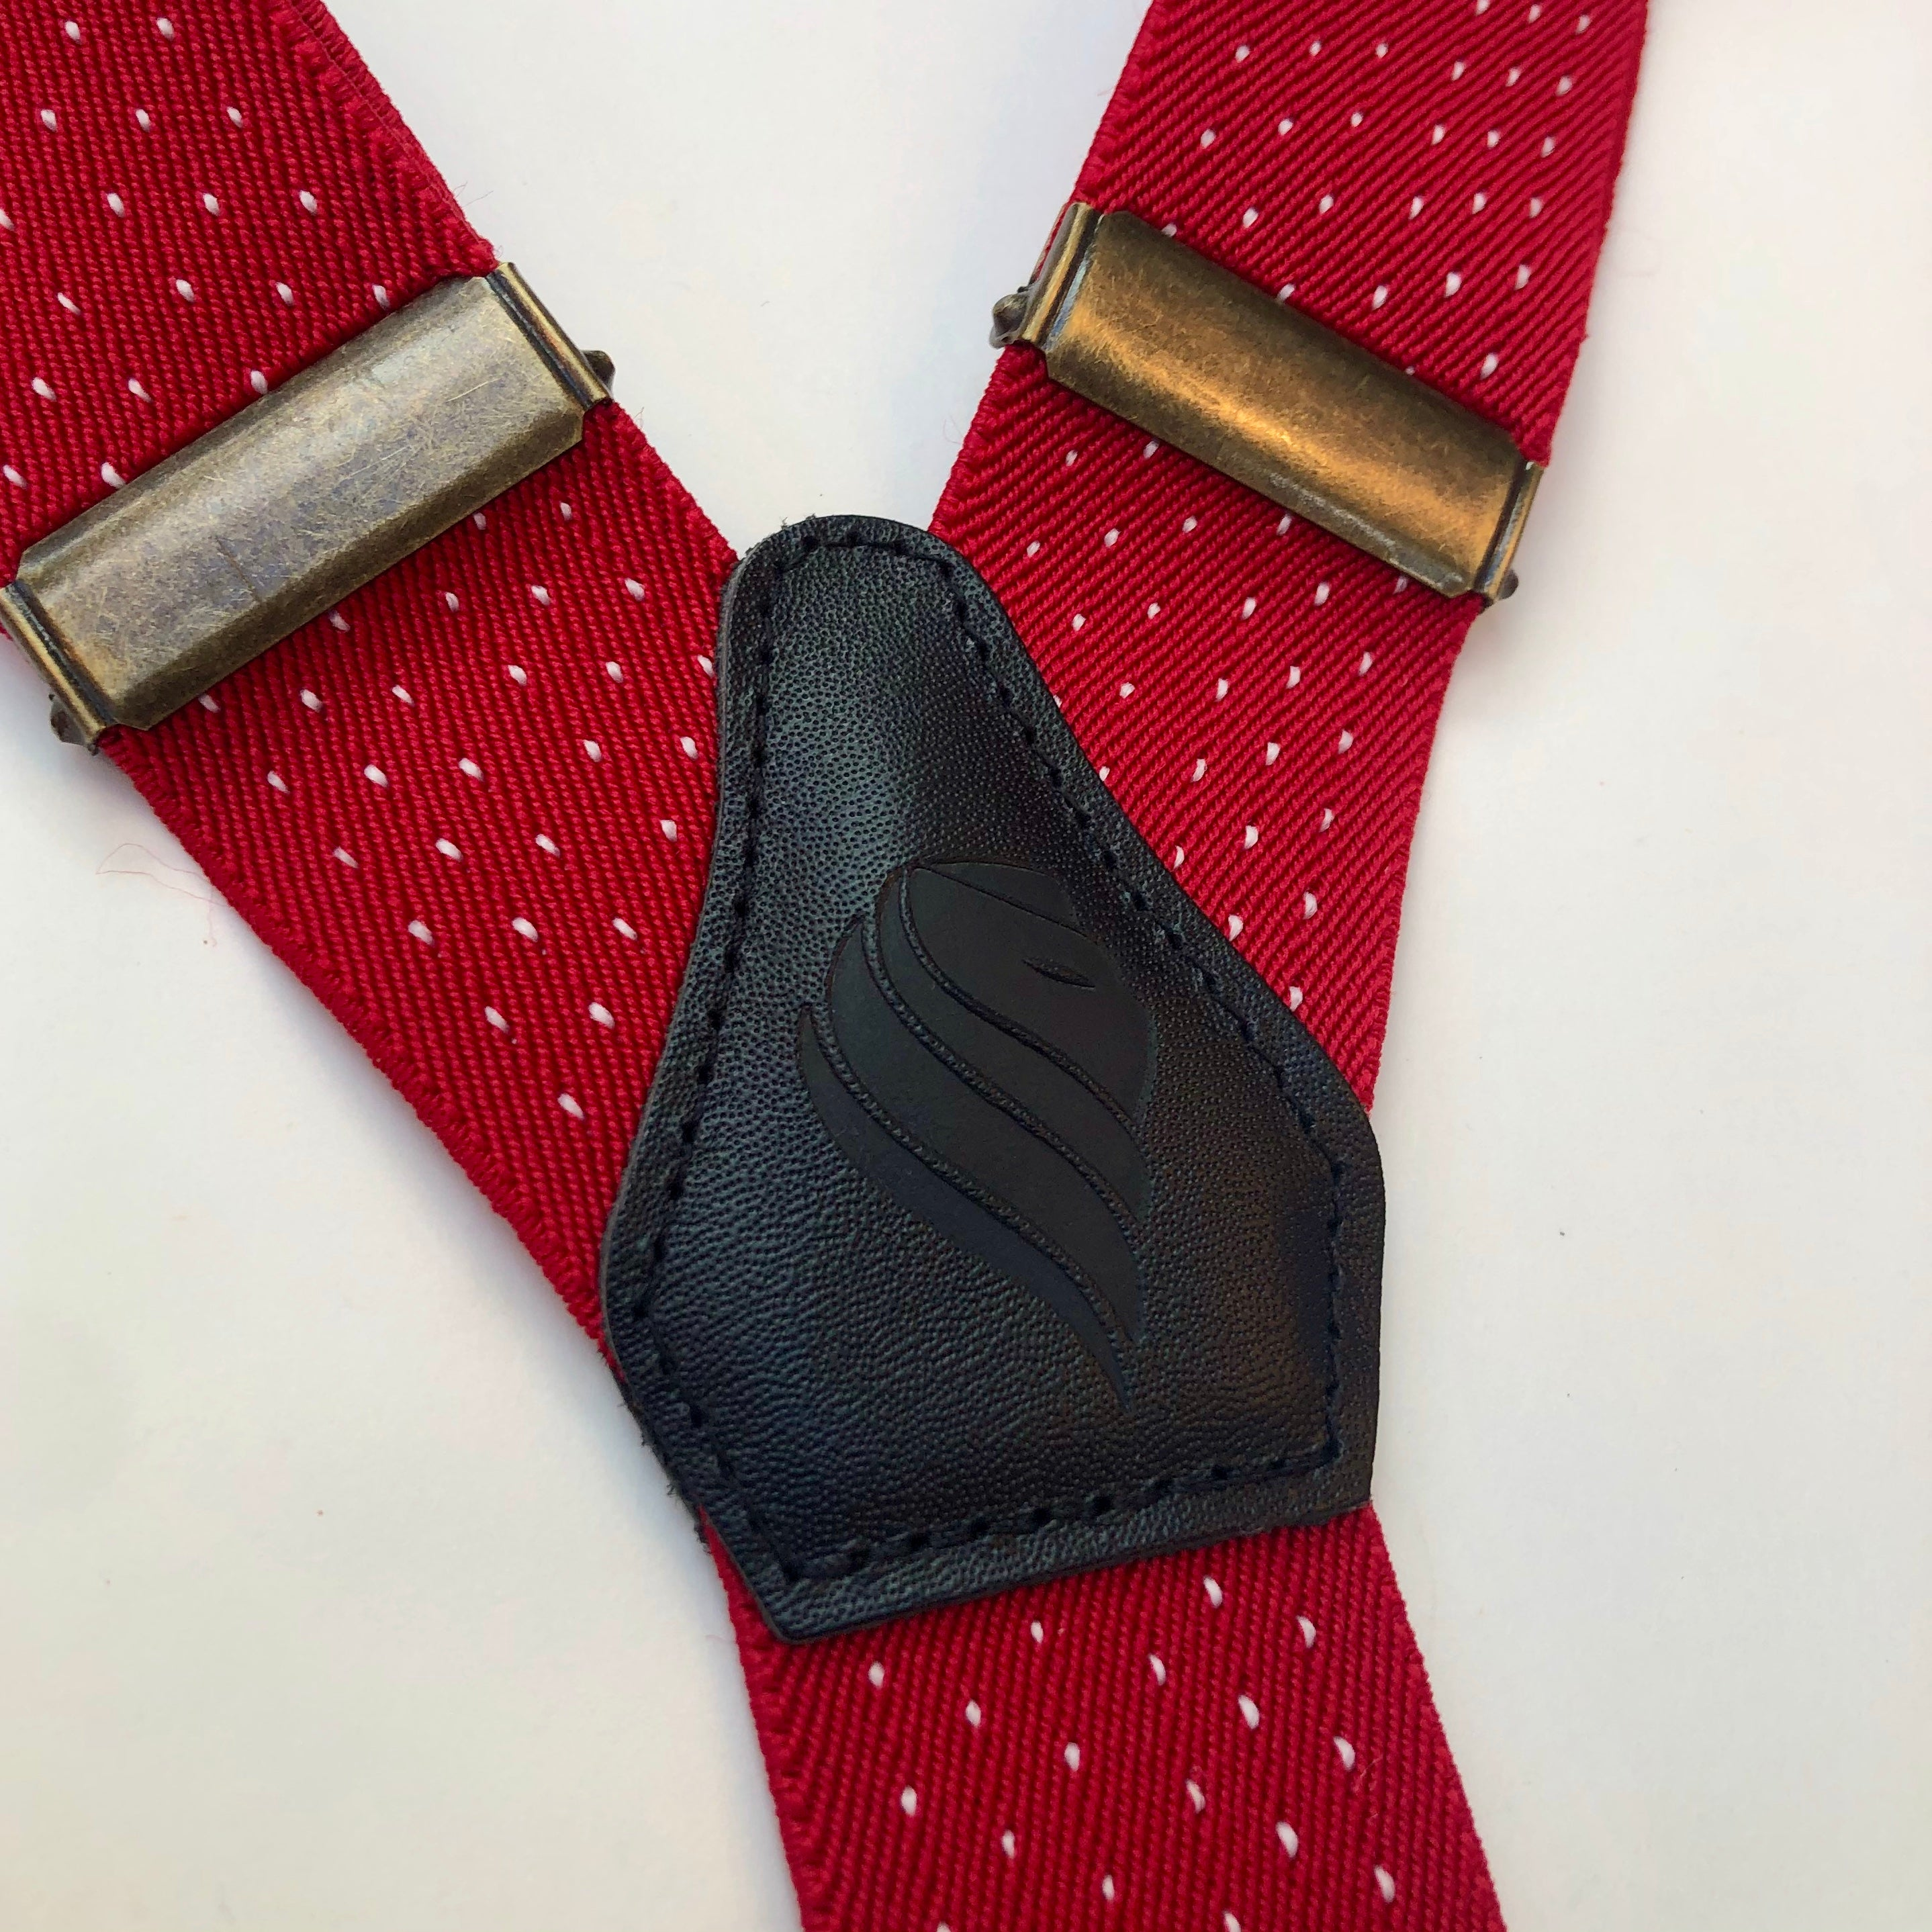 Mens Red and White Polka Dot Braces with Black leather